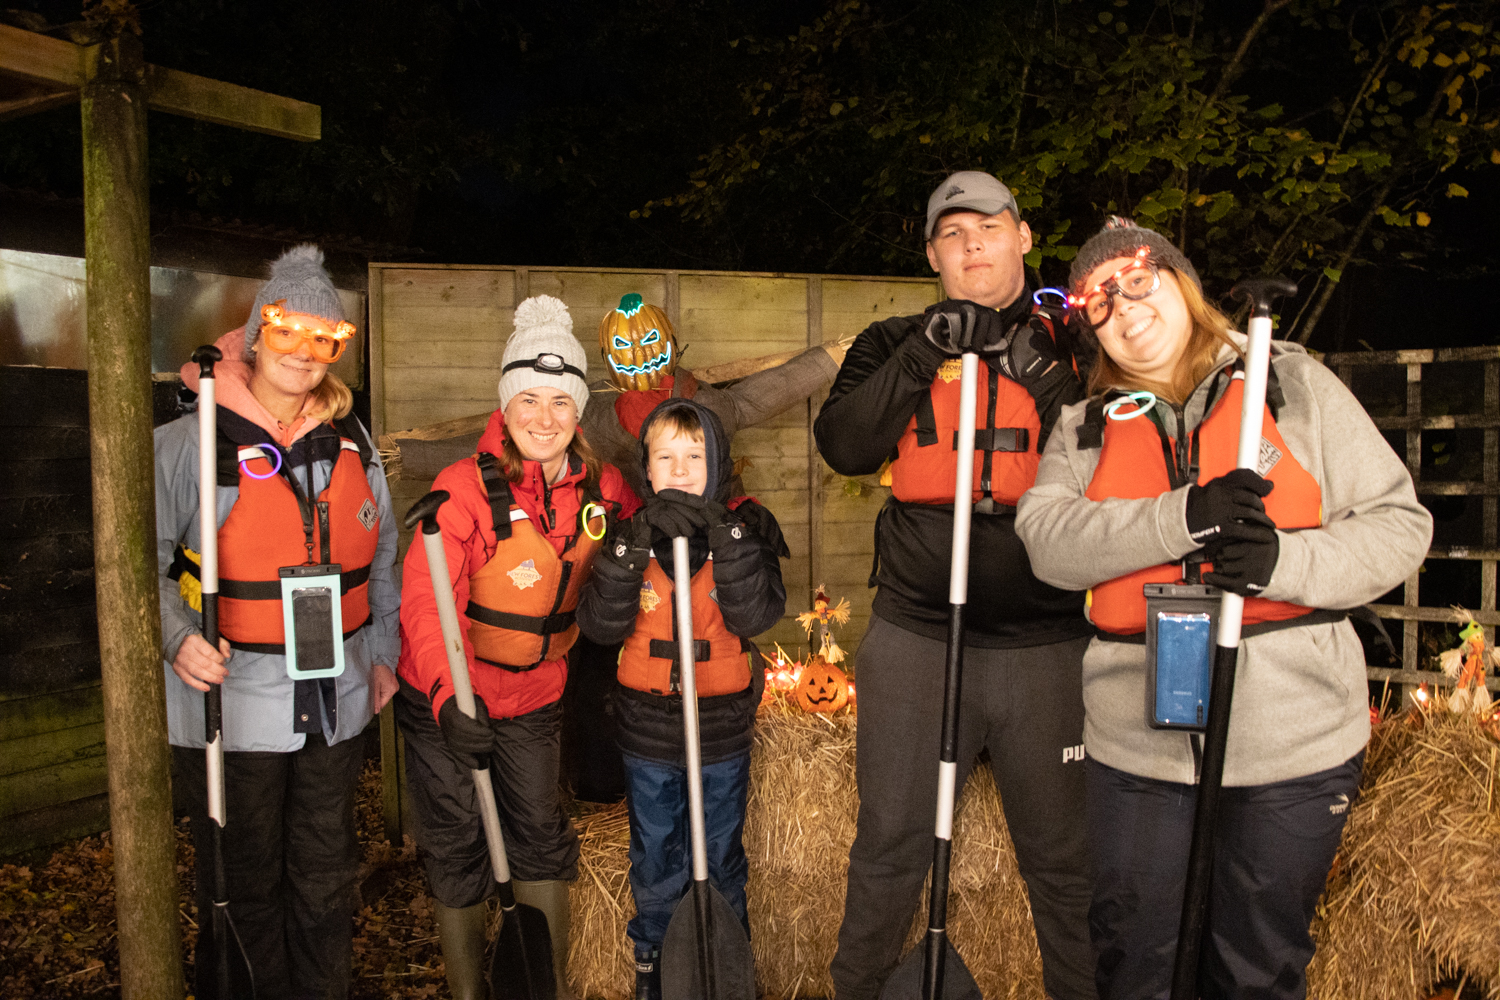 A group before they head out on their Spooky Halloween River Tour.